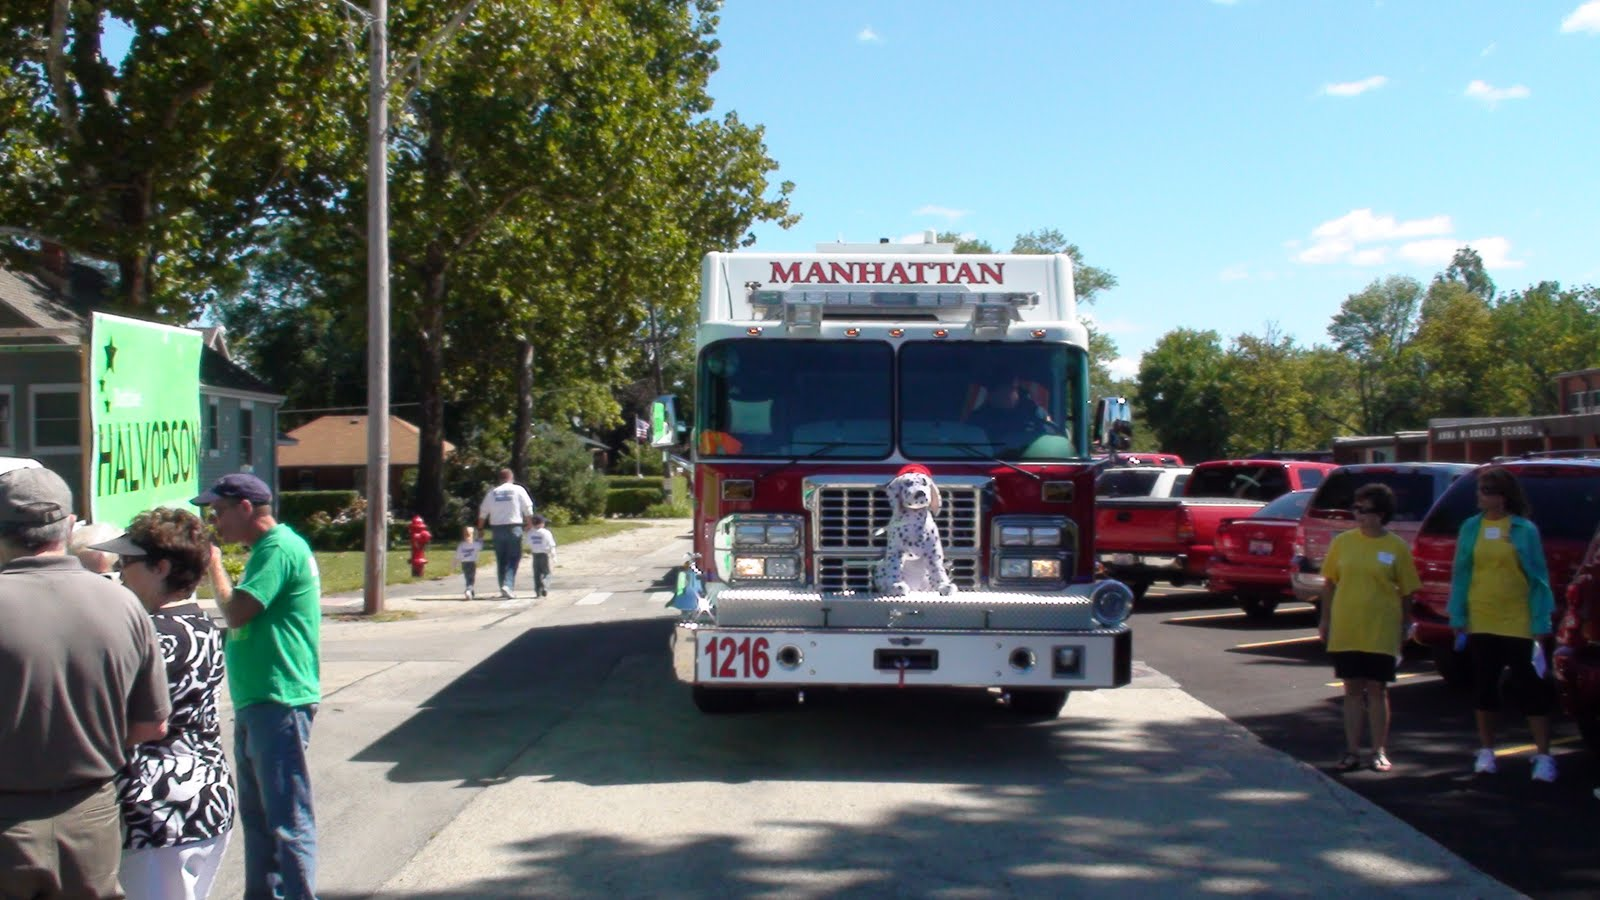 Illinois will county manhattan - The Manhattan Fire Department Prepares To Lead Off The Parade